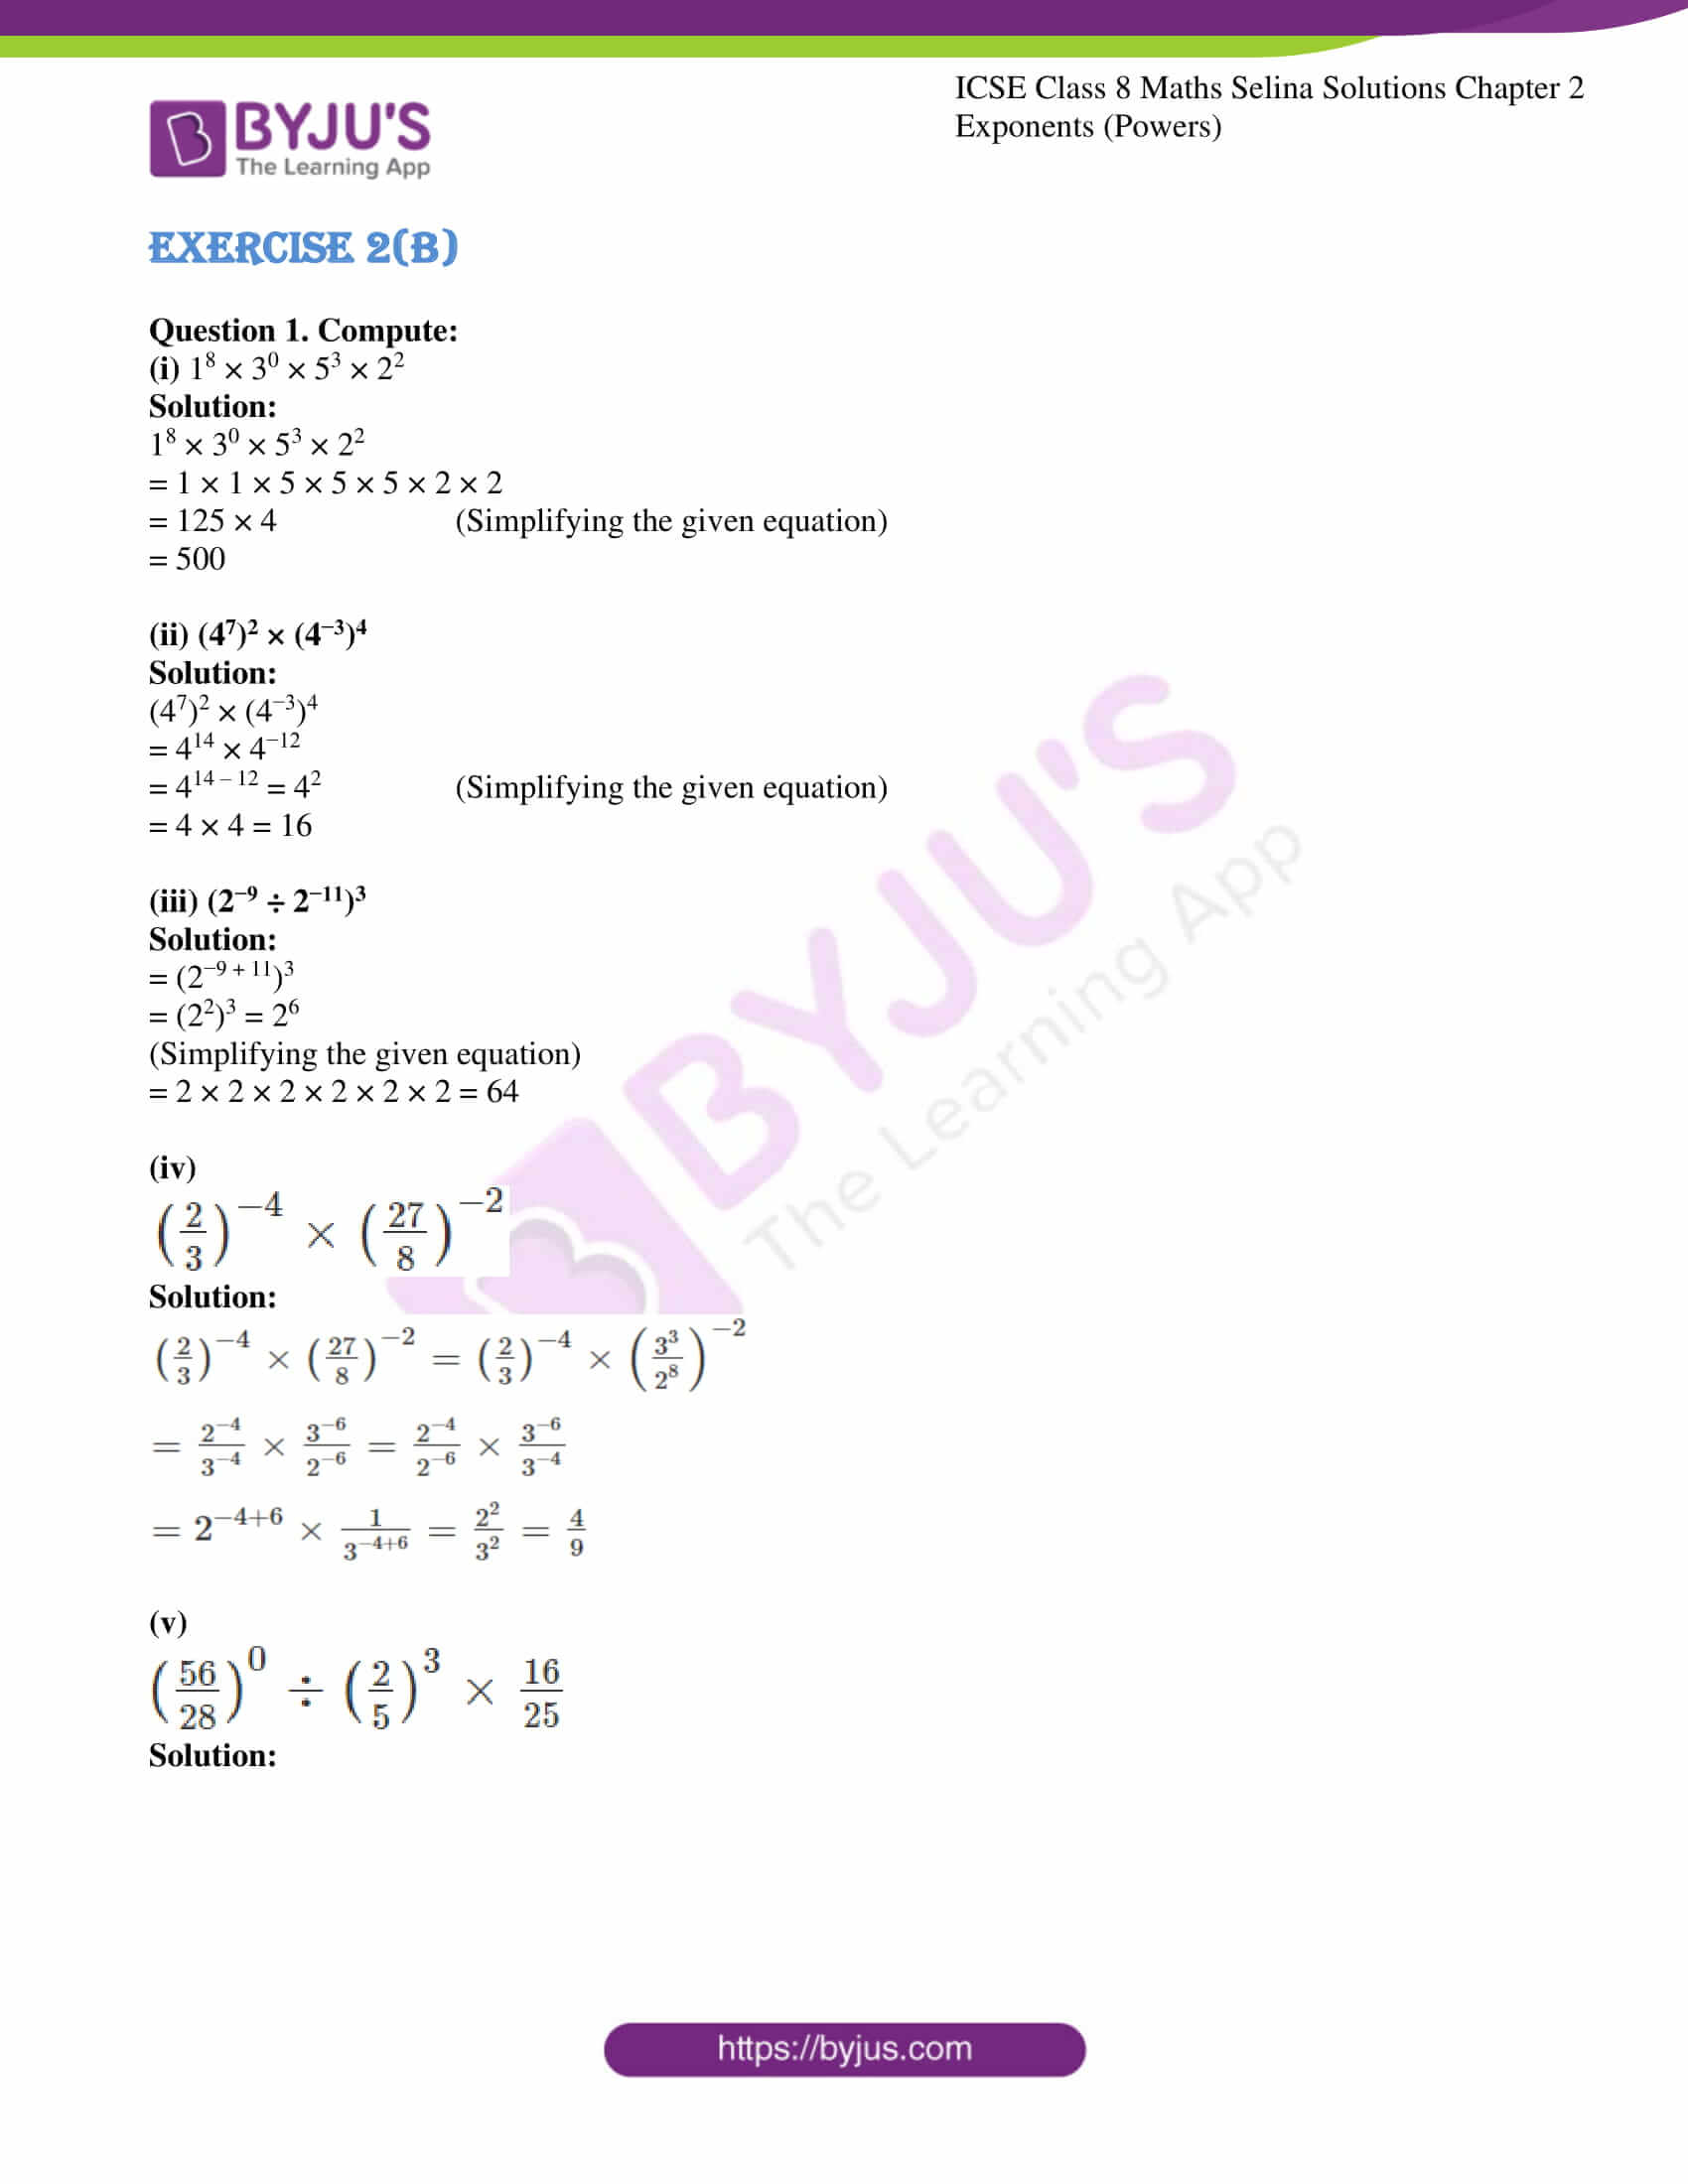 icse april7 class 8 maths selina solutions chapter 2 exponents powers 04